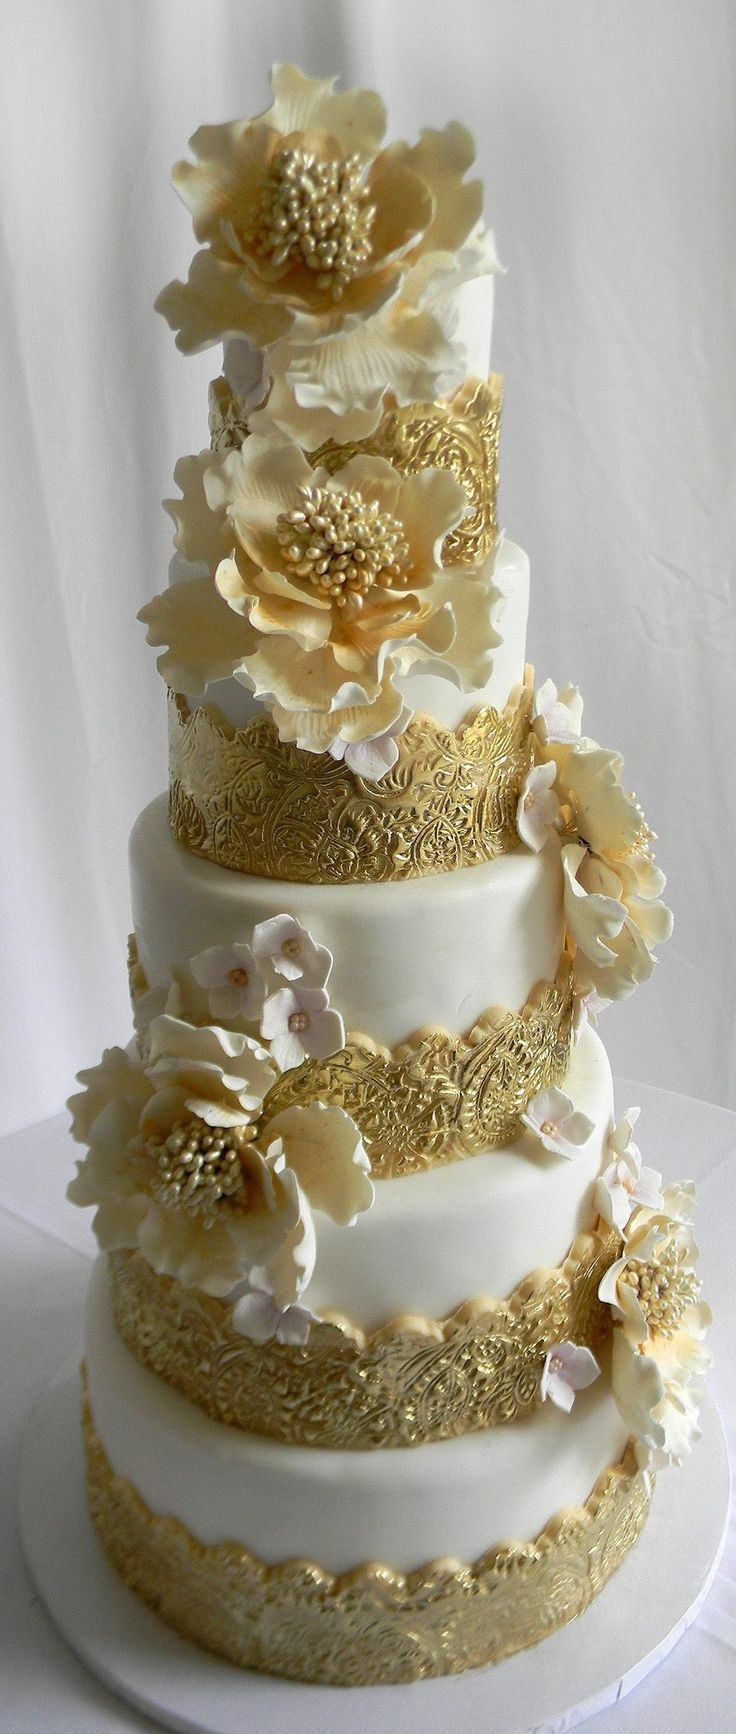 gold and white wedding cake designs amazing wedding cake http livingglamourmakeup au 14743